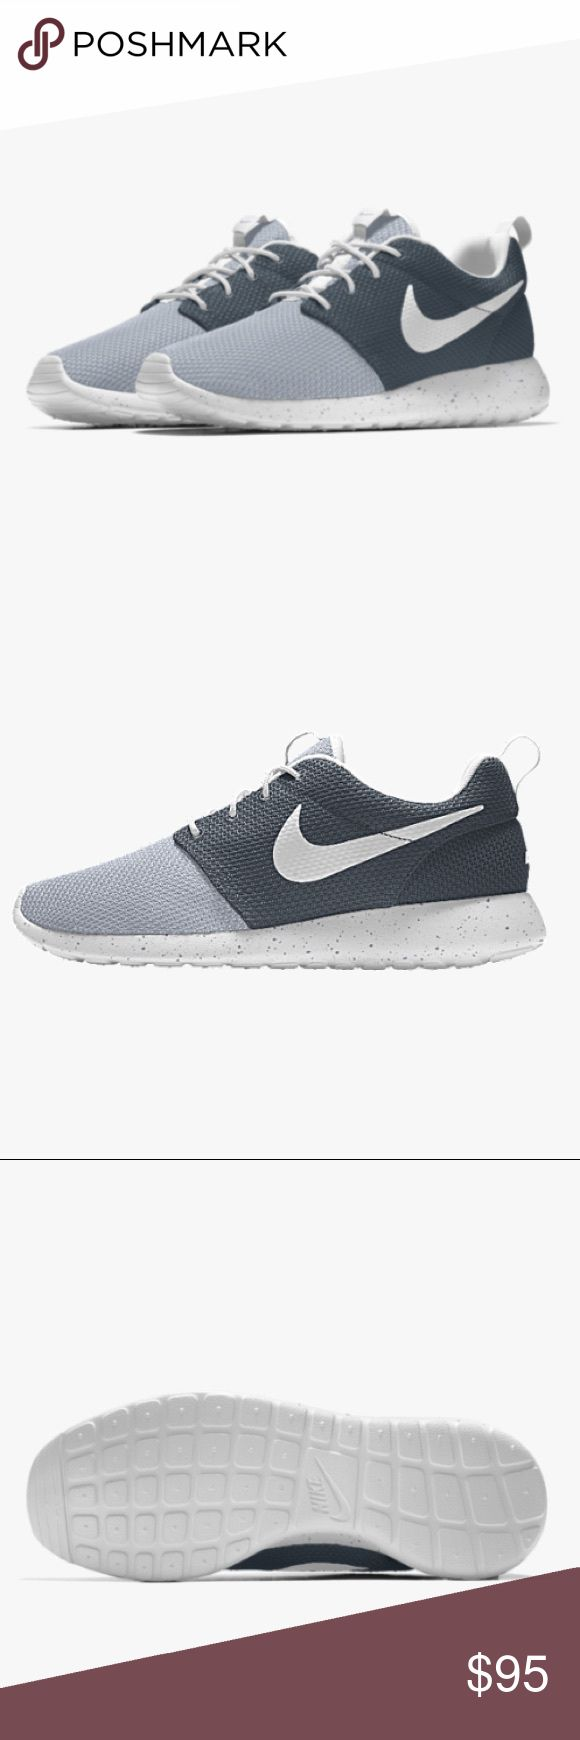 Custom Nike Roshe One iD women's Shoe Custom Nike Roshe One iD women's Shoe   I made these Nikes but unfortunately don't fit. They have been worn twice and are still in great shape just like brand new. Nike Shoes Athletic Shoes